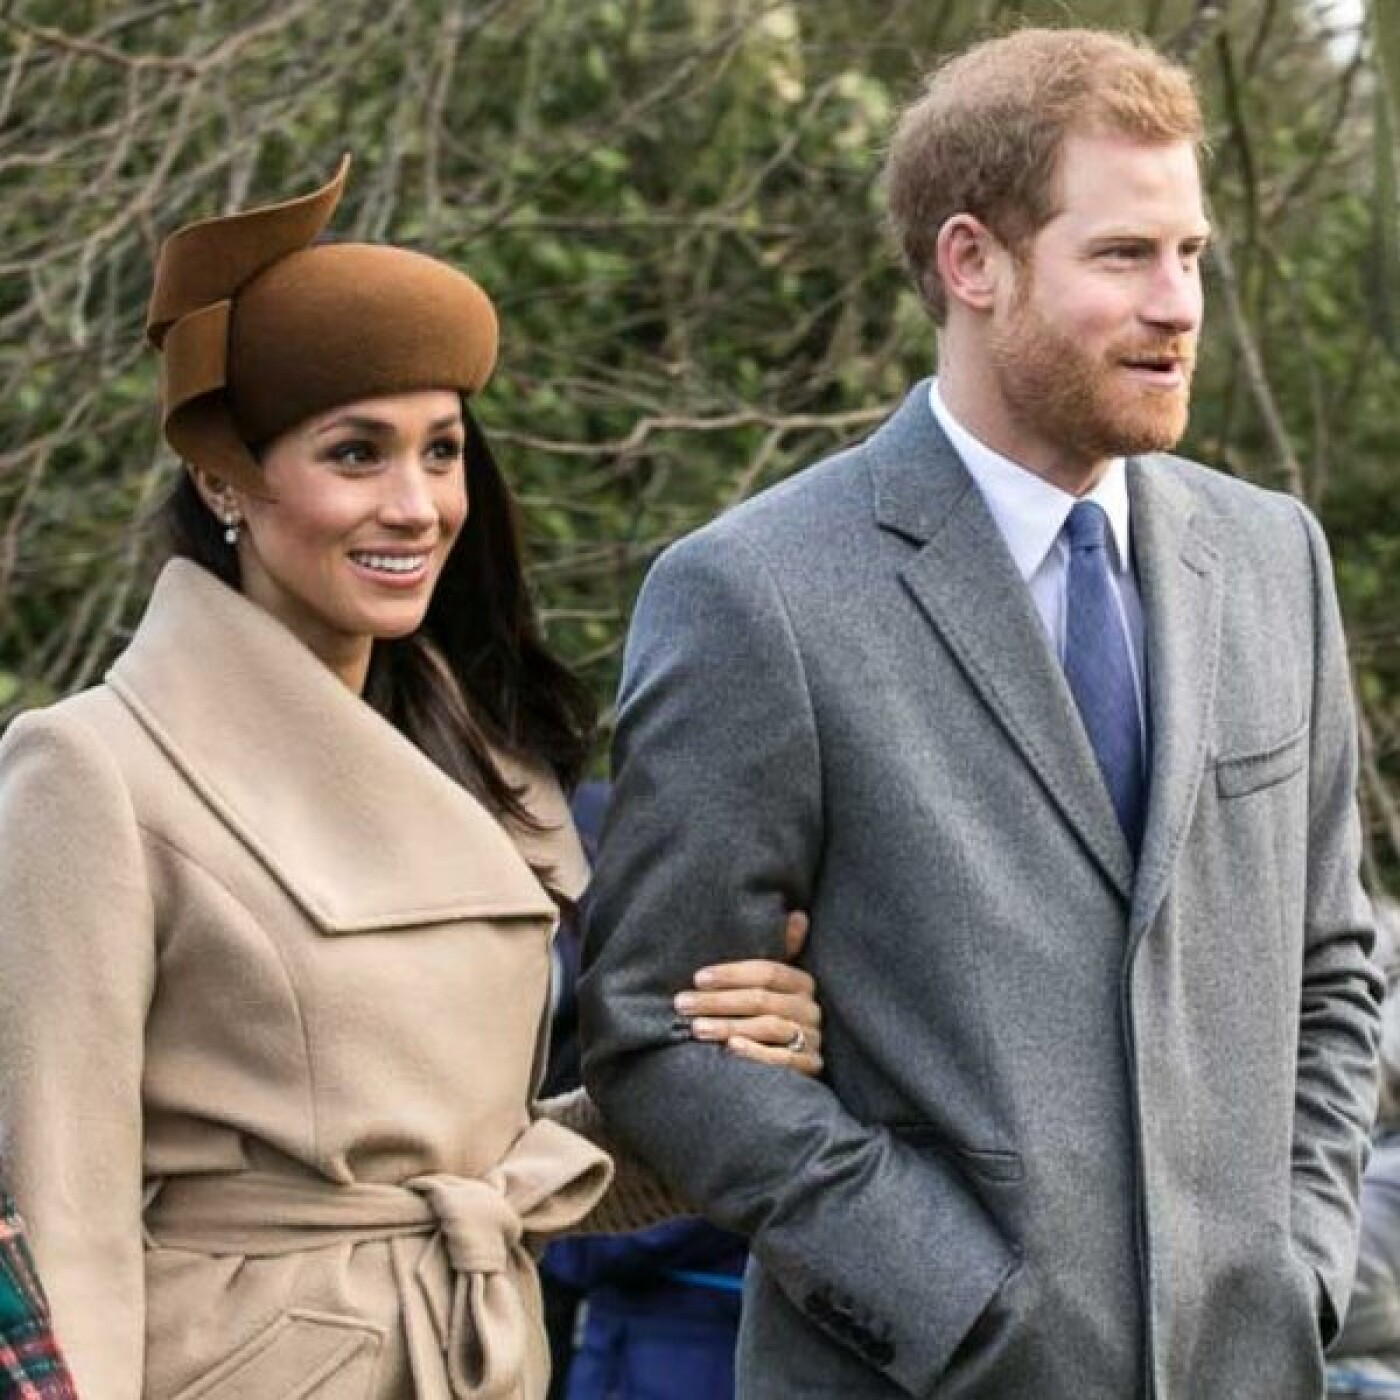 L'interview du Prince Harry et Meghan Markle